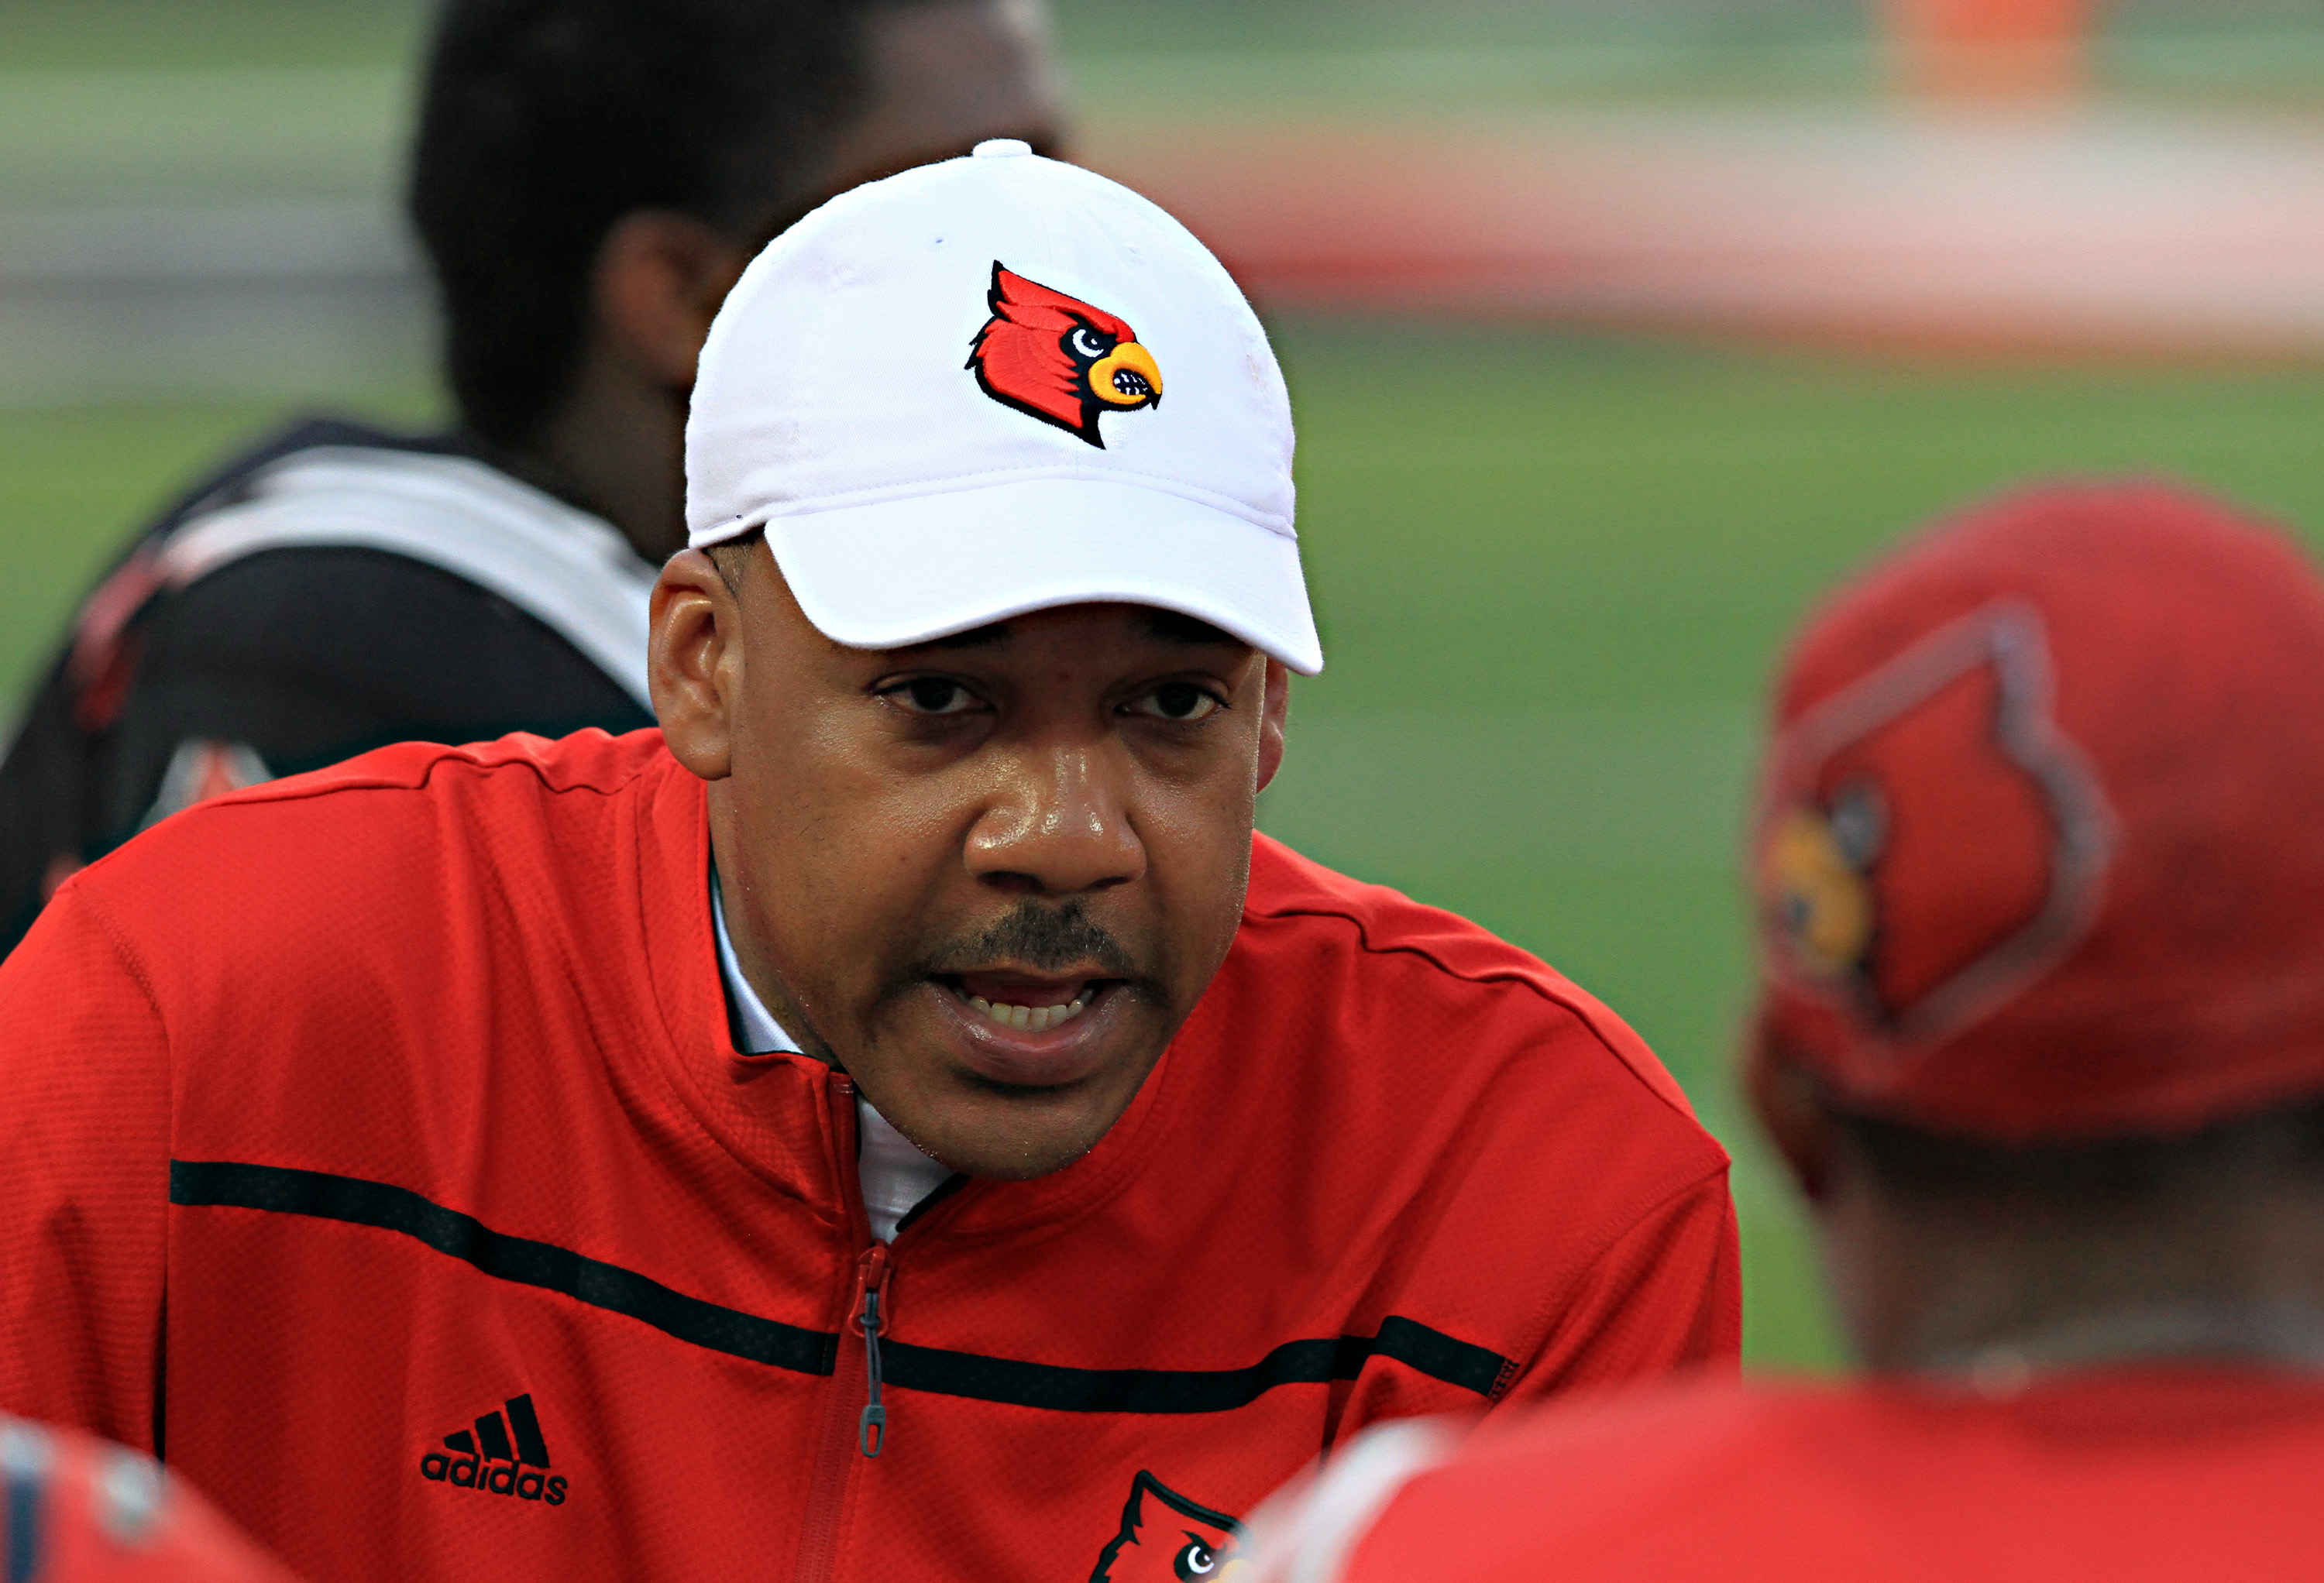 FILE - In this April 17, 2015, file photo, Louisville offensive coordinator Garrick McGee talks to the offensive unit on the sidelines in the annual spring NCAA college football scrimmage at Cardinal Stadium in Louisville, Ky. Garrick McGee is leaving Lou